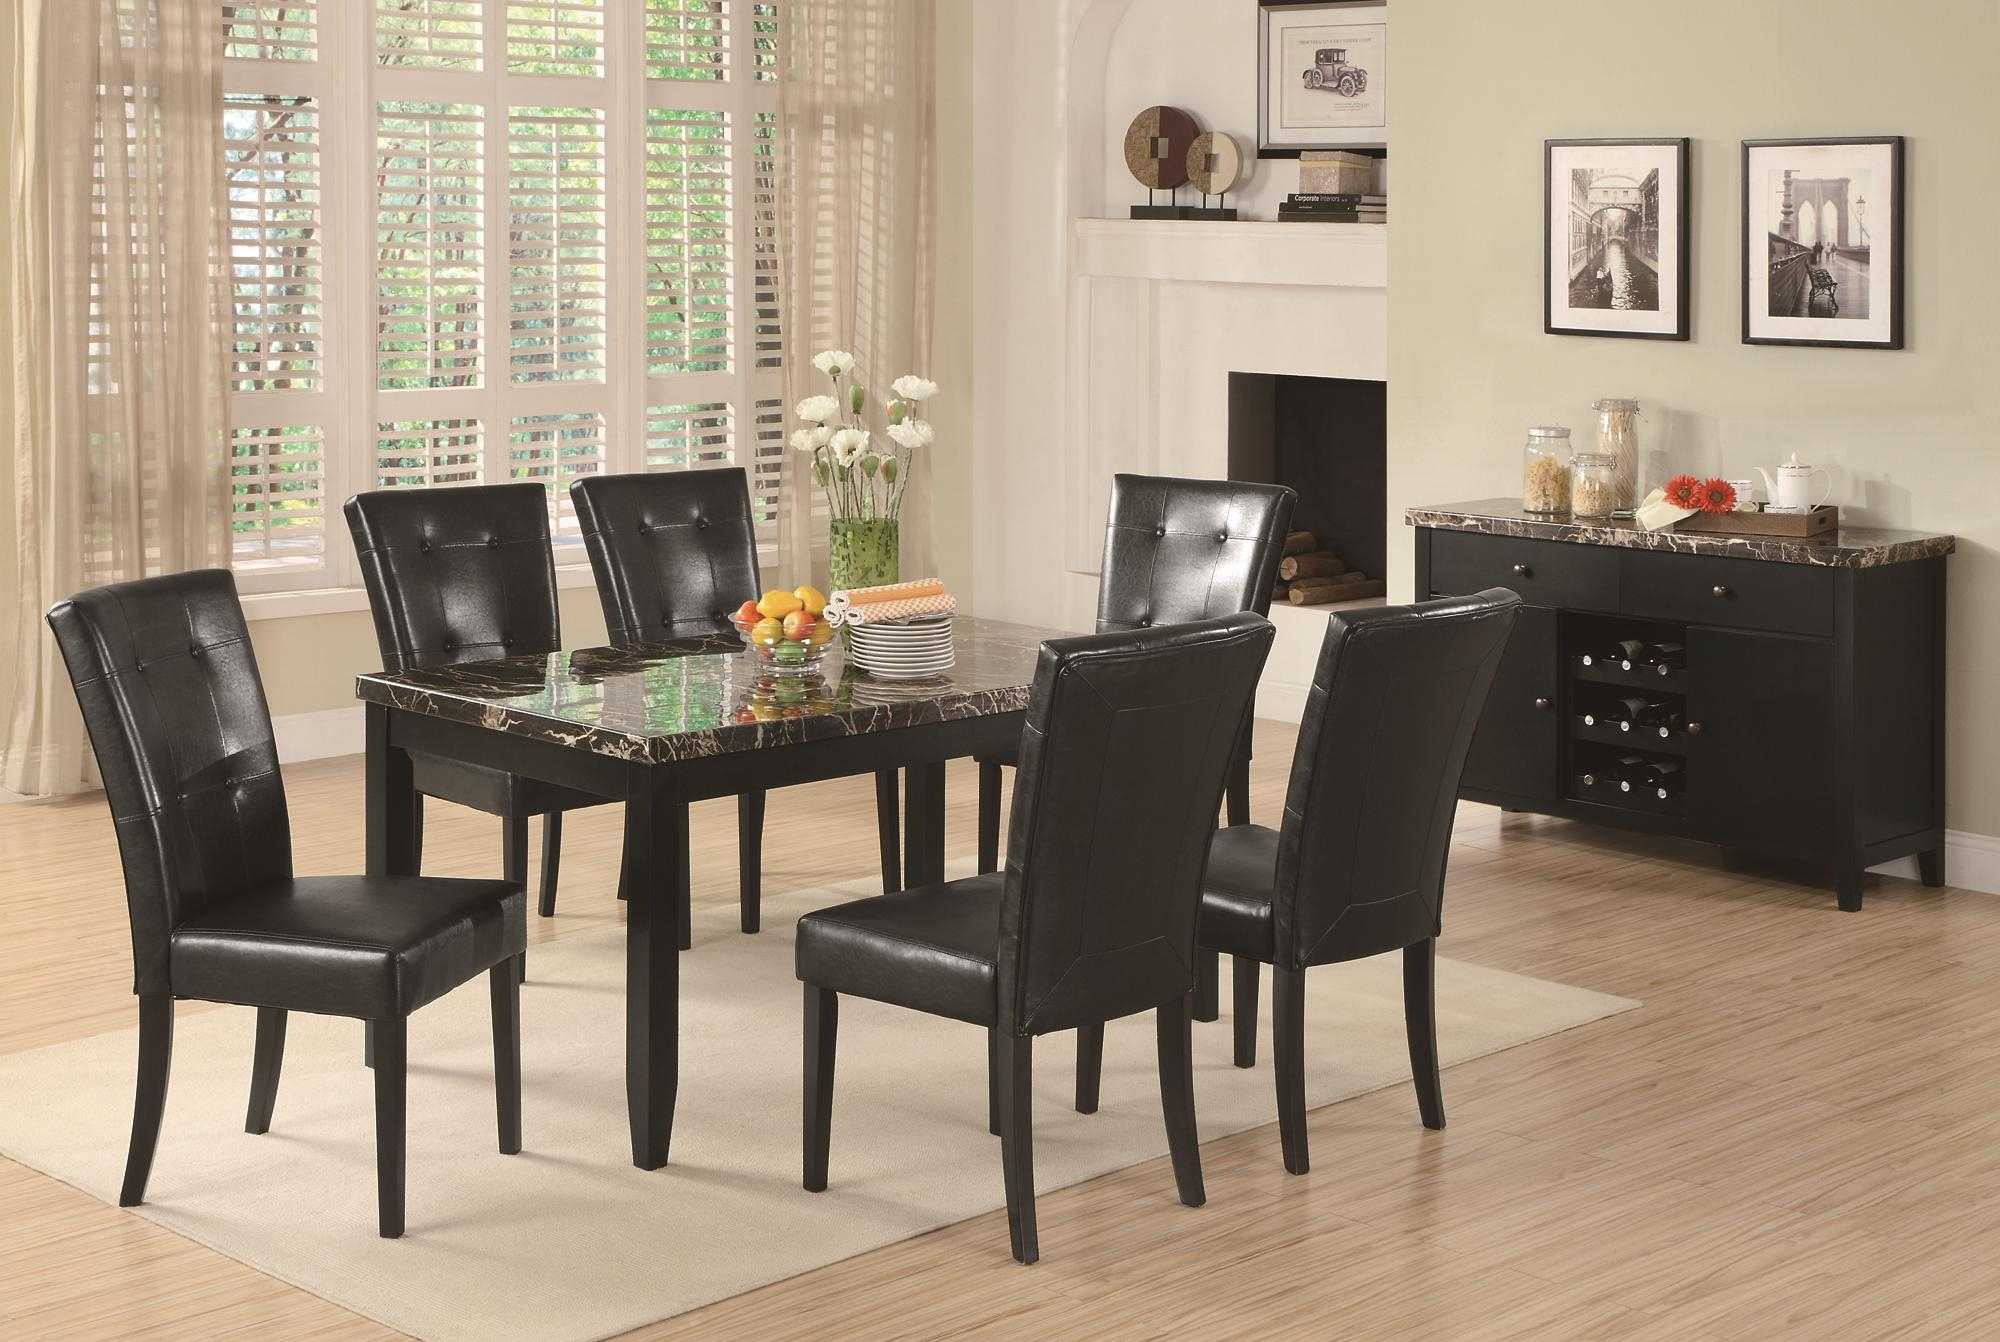 Attirant Counter Height Marble Top Dining Sets